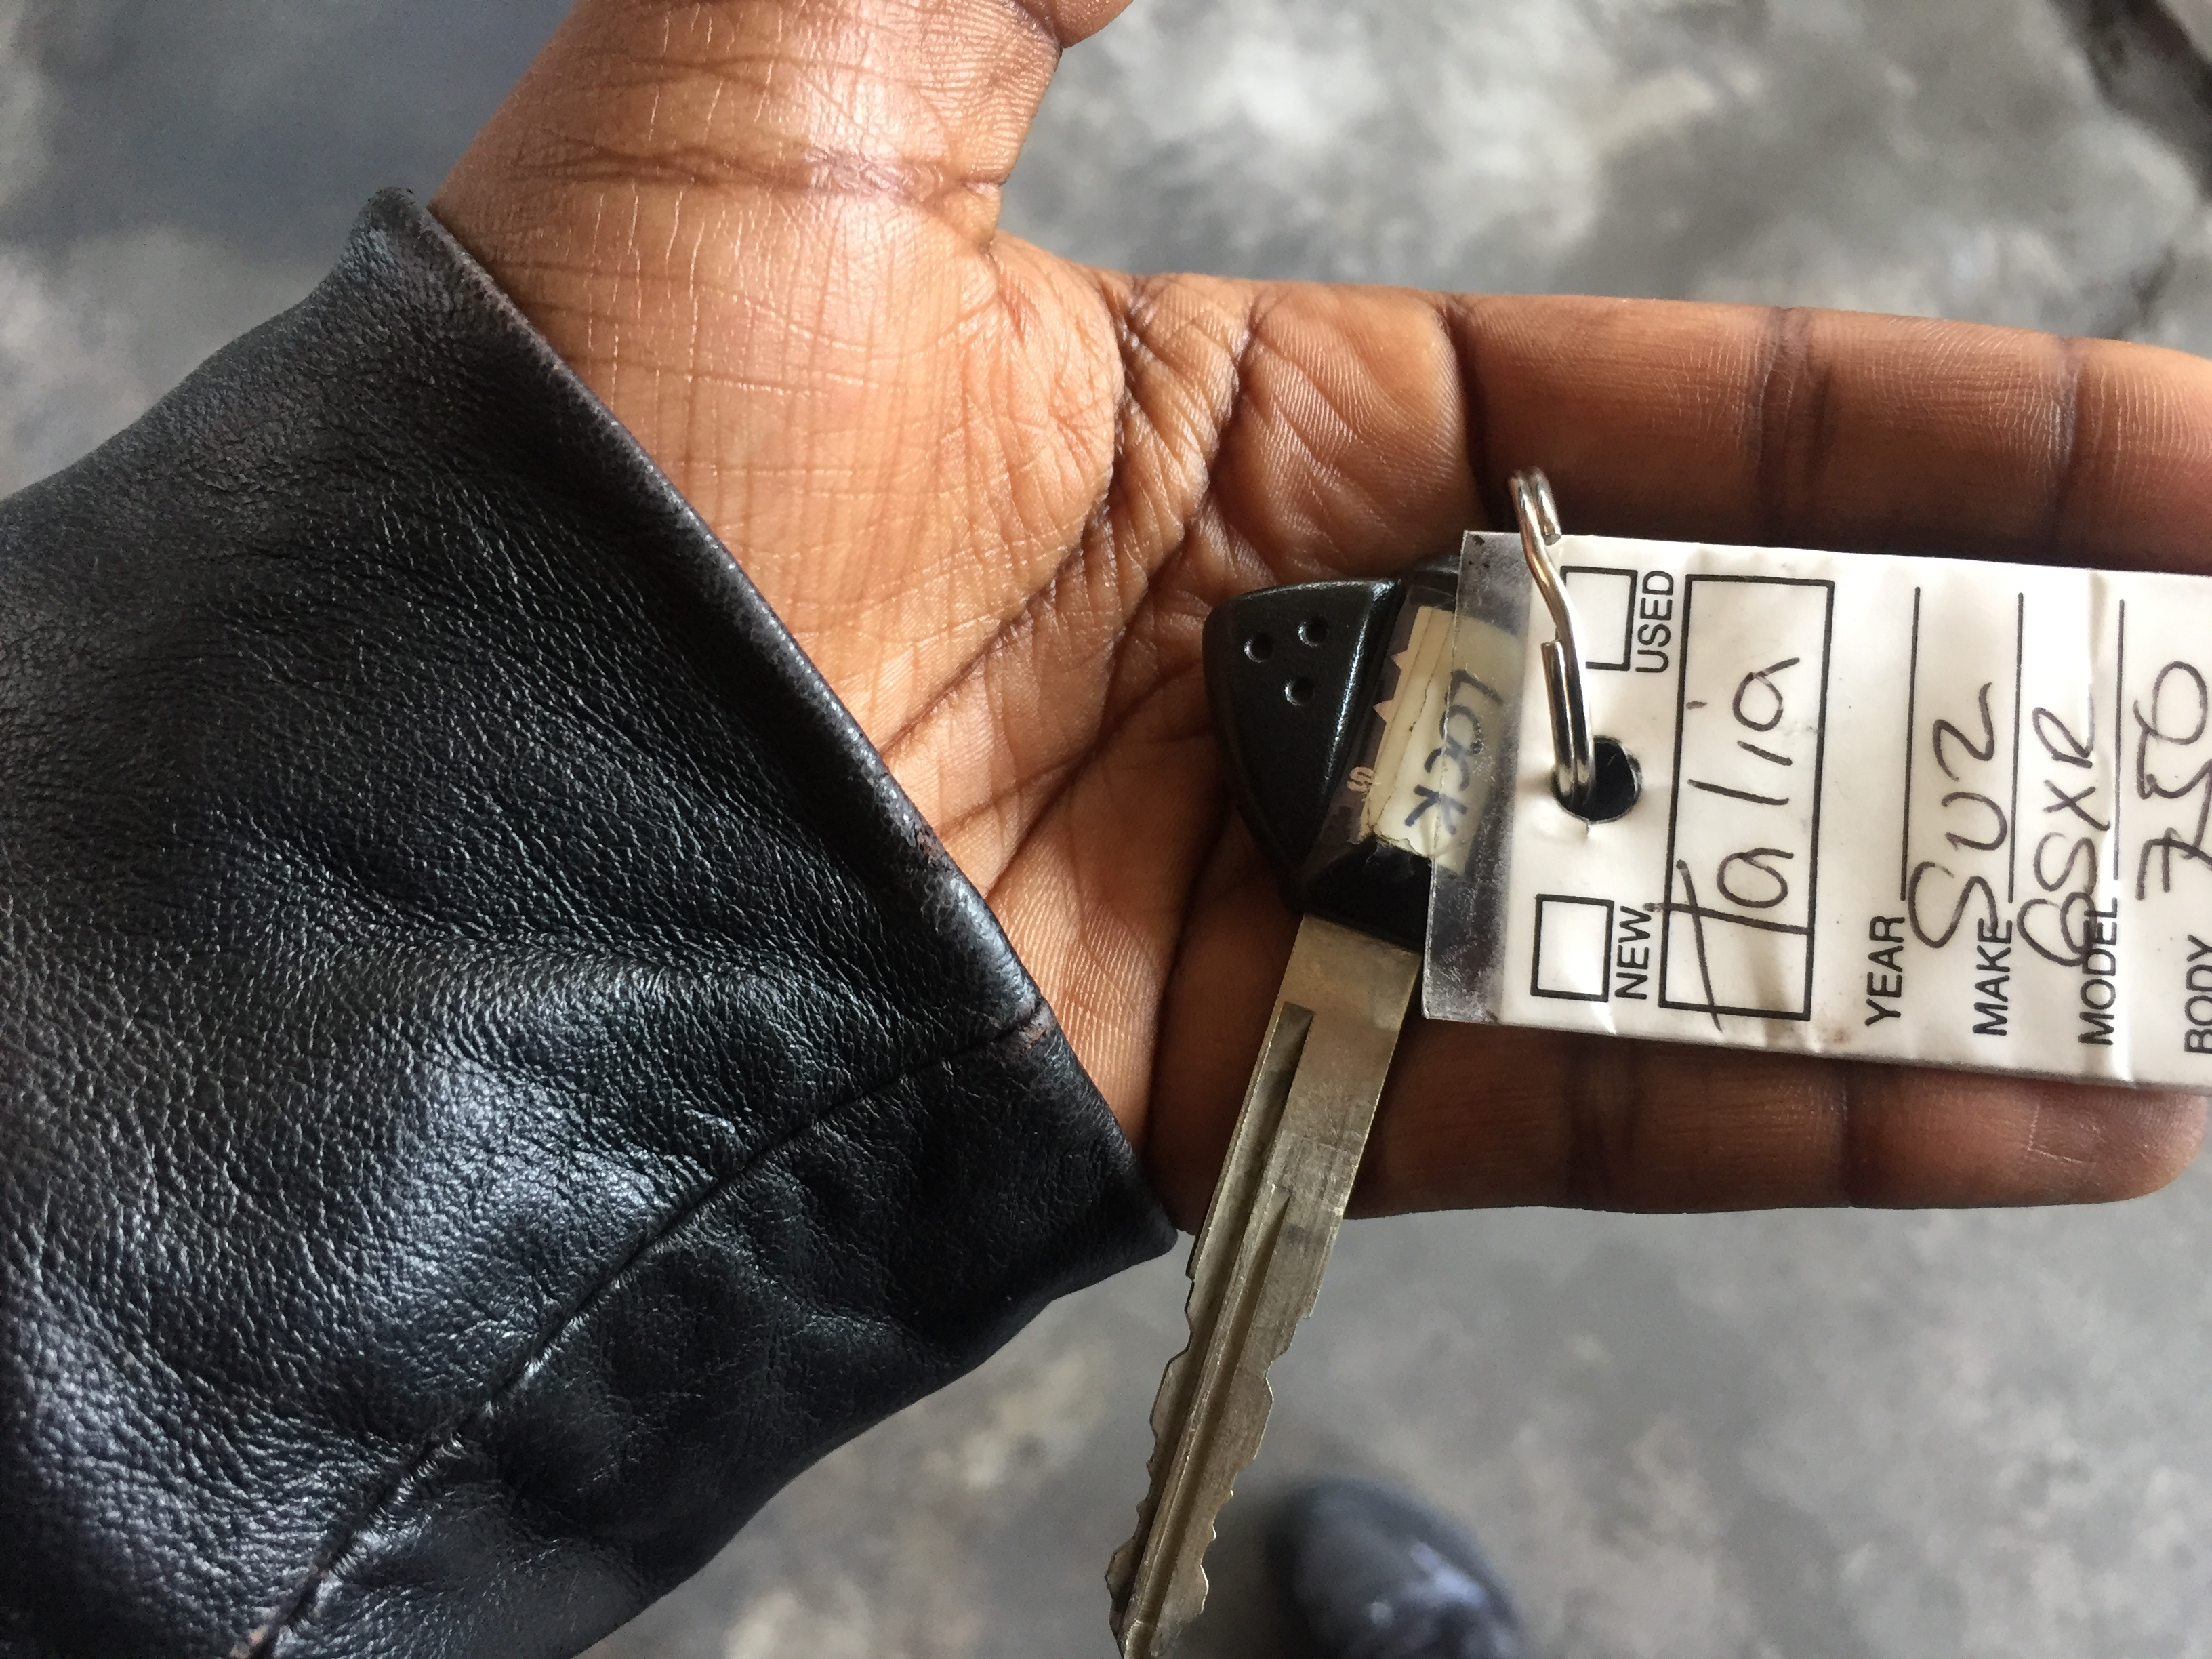 brand new motorcycle key in hand